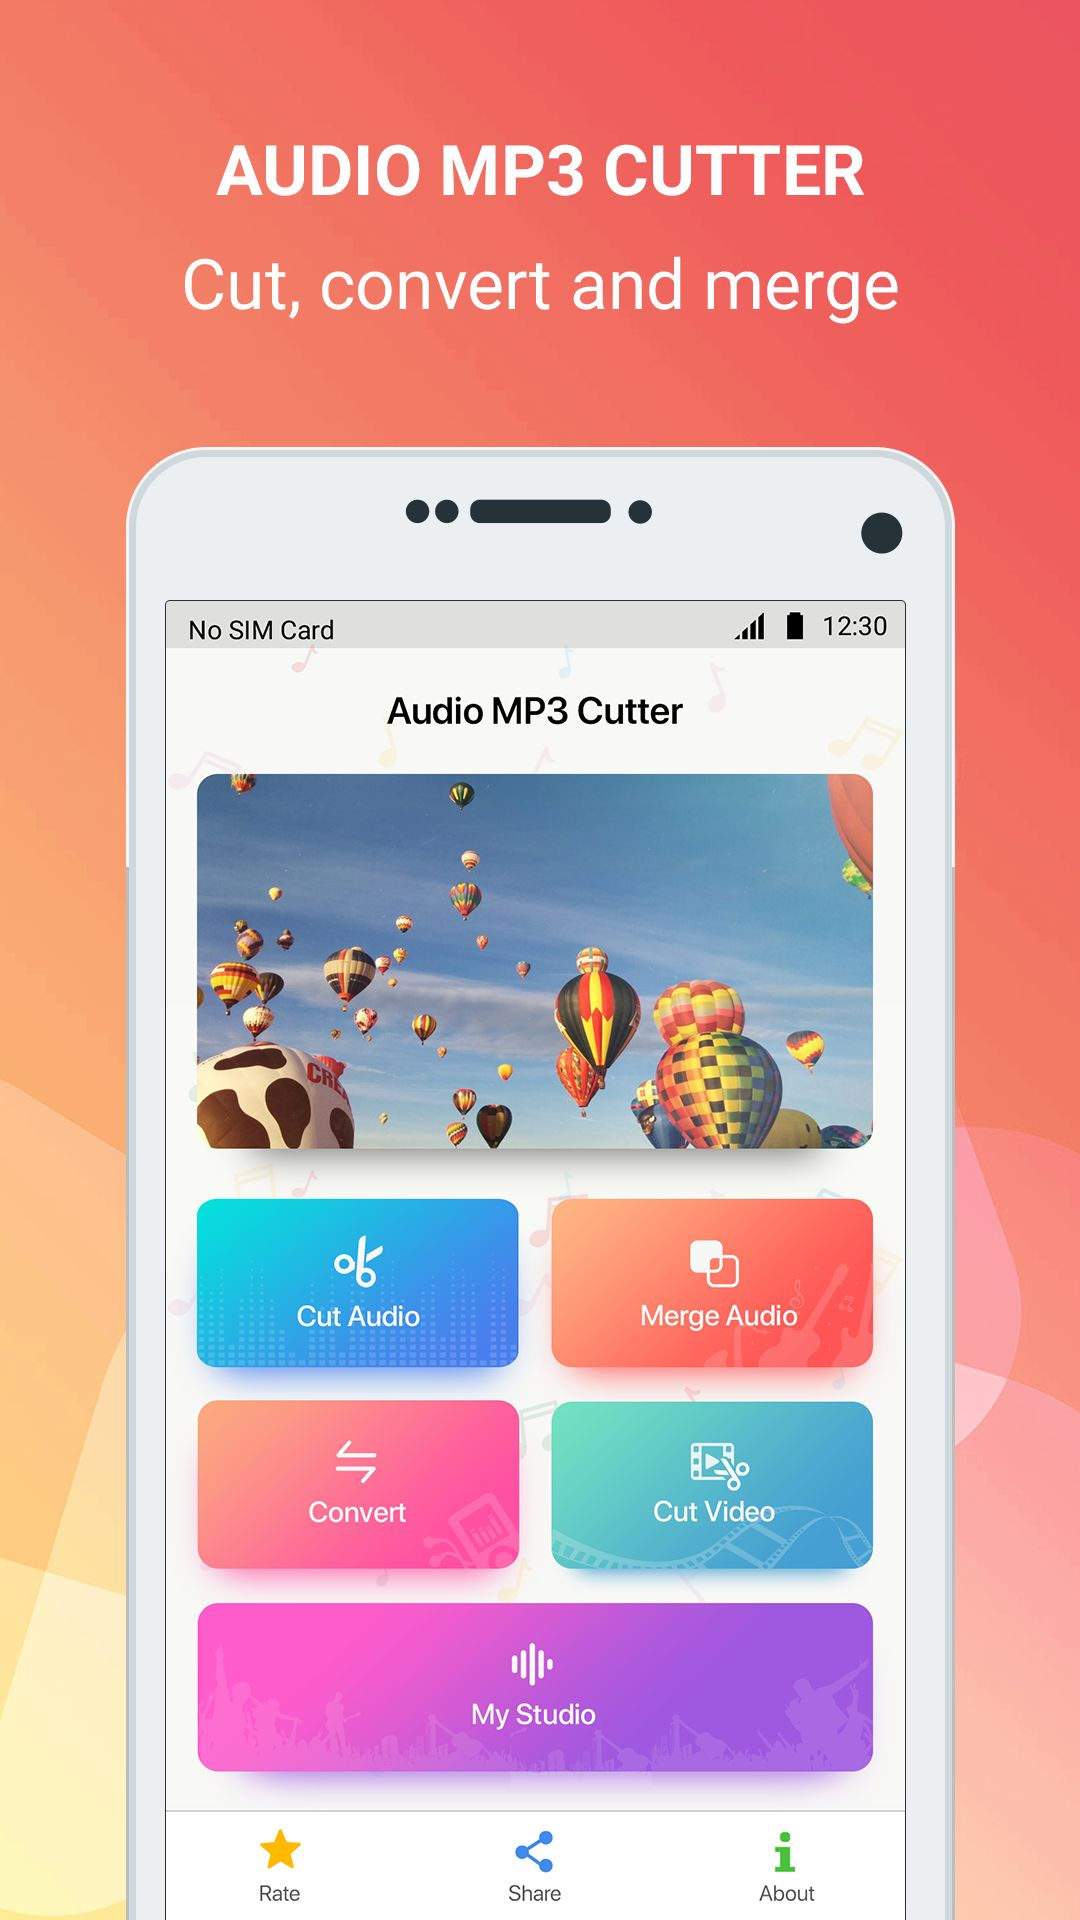 Mp3 cutter - Android Source Code Screenshot 1